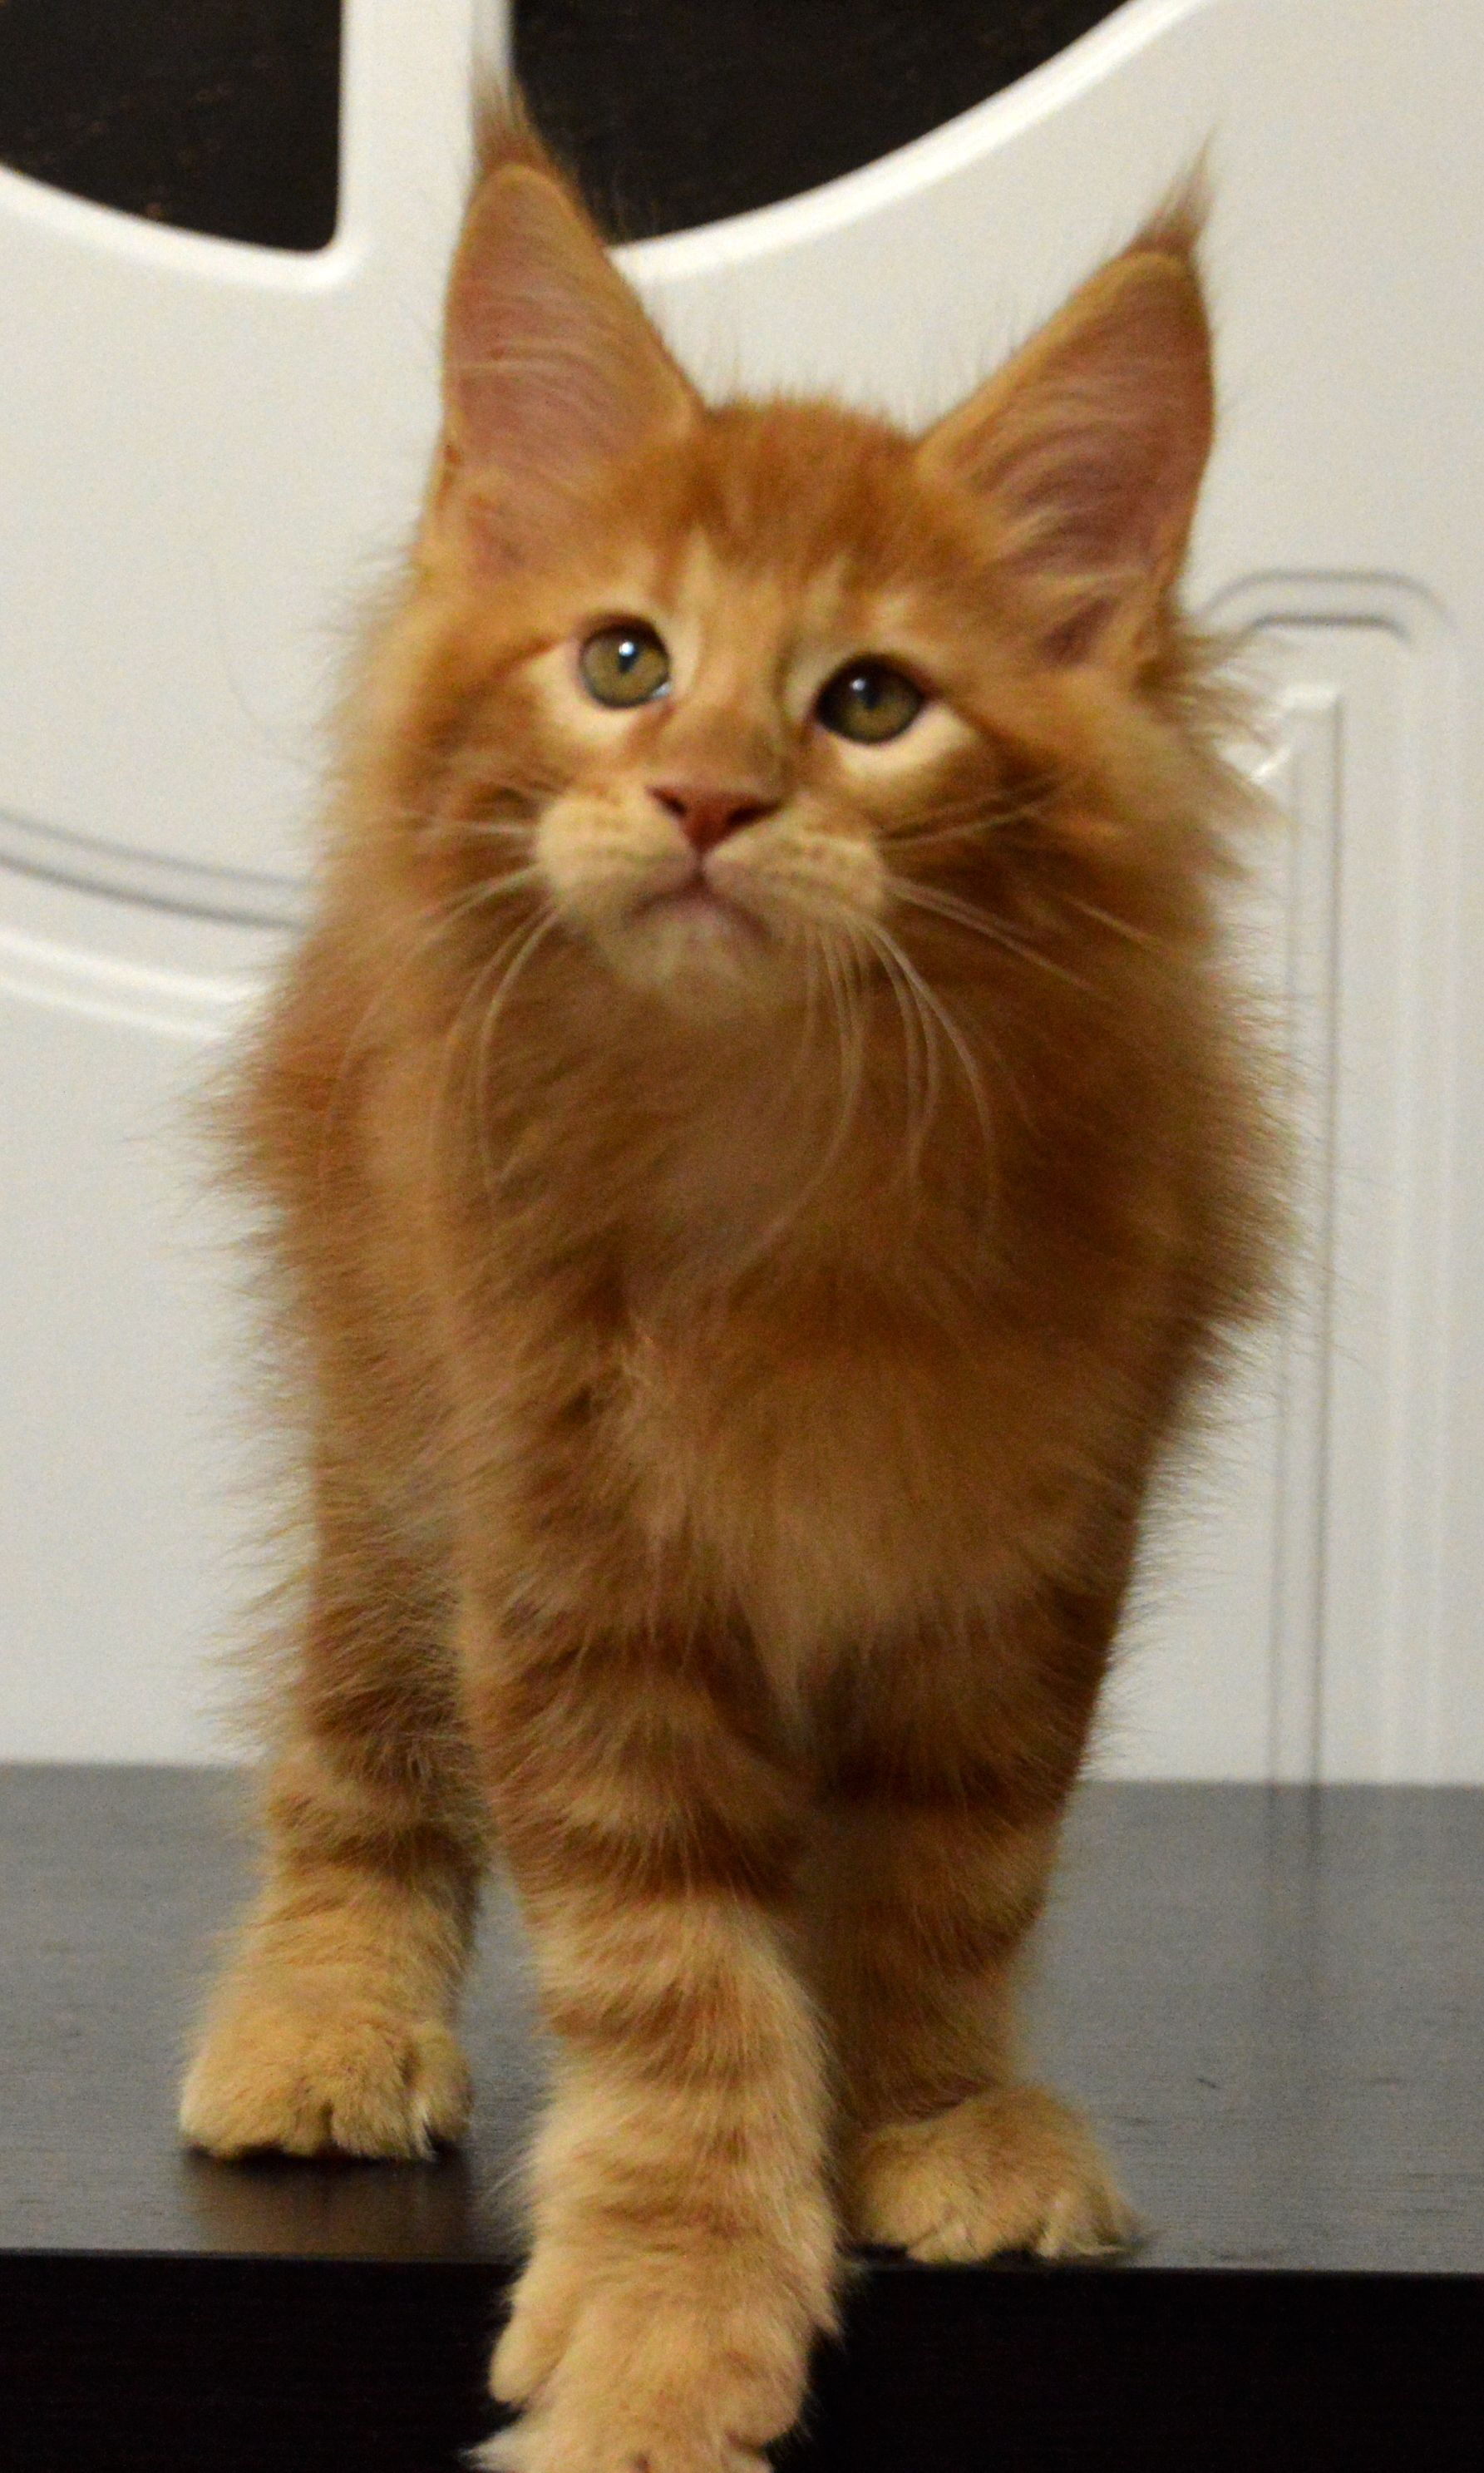 Where to Find Maine Coon Kittens for Sale